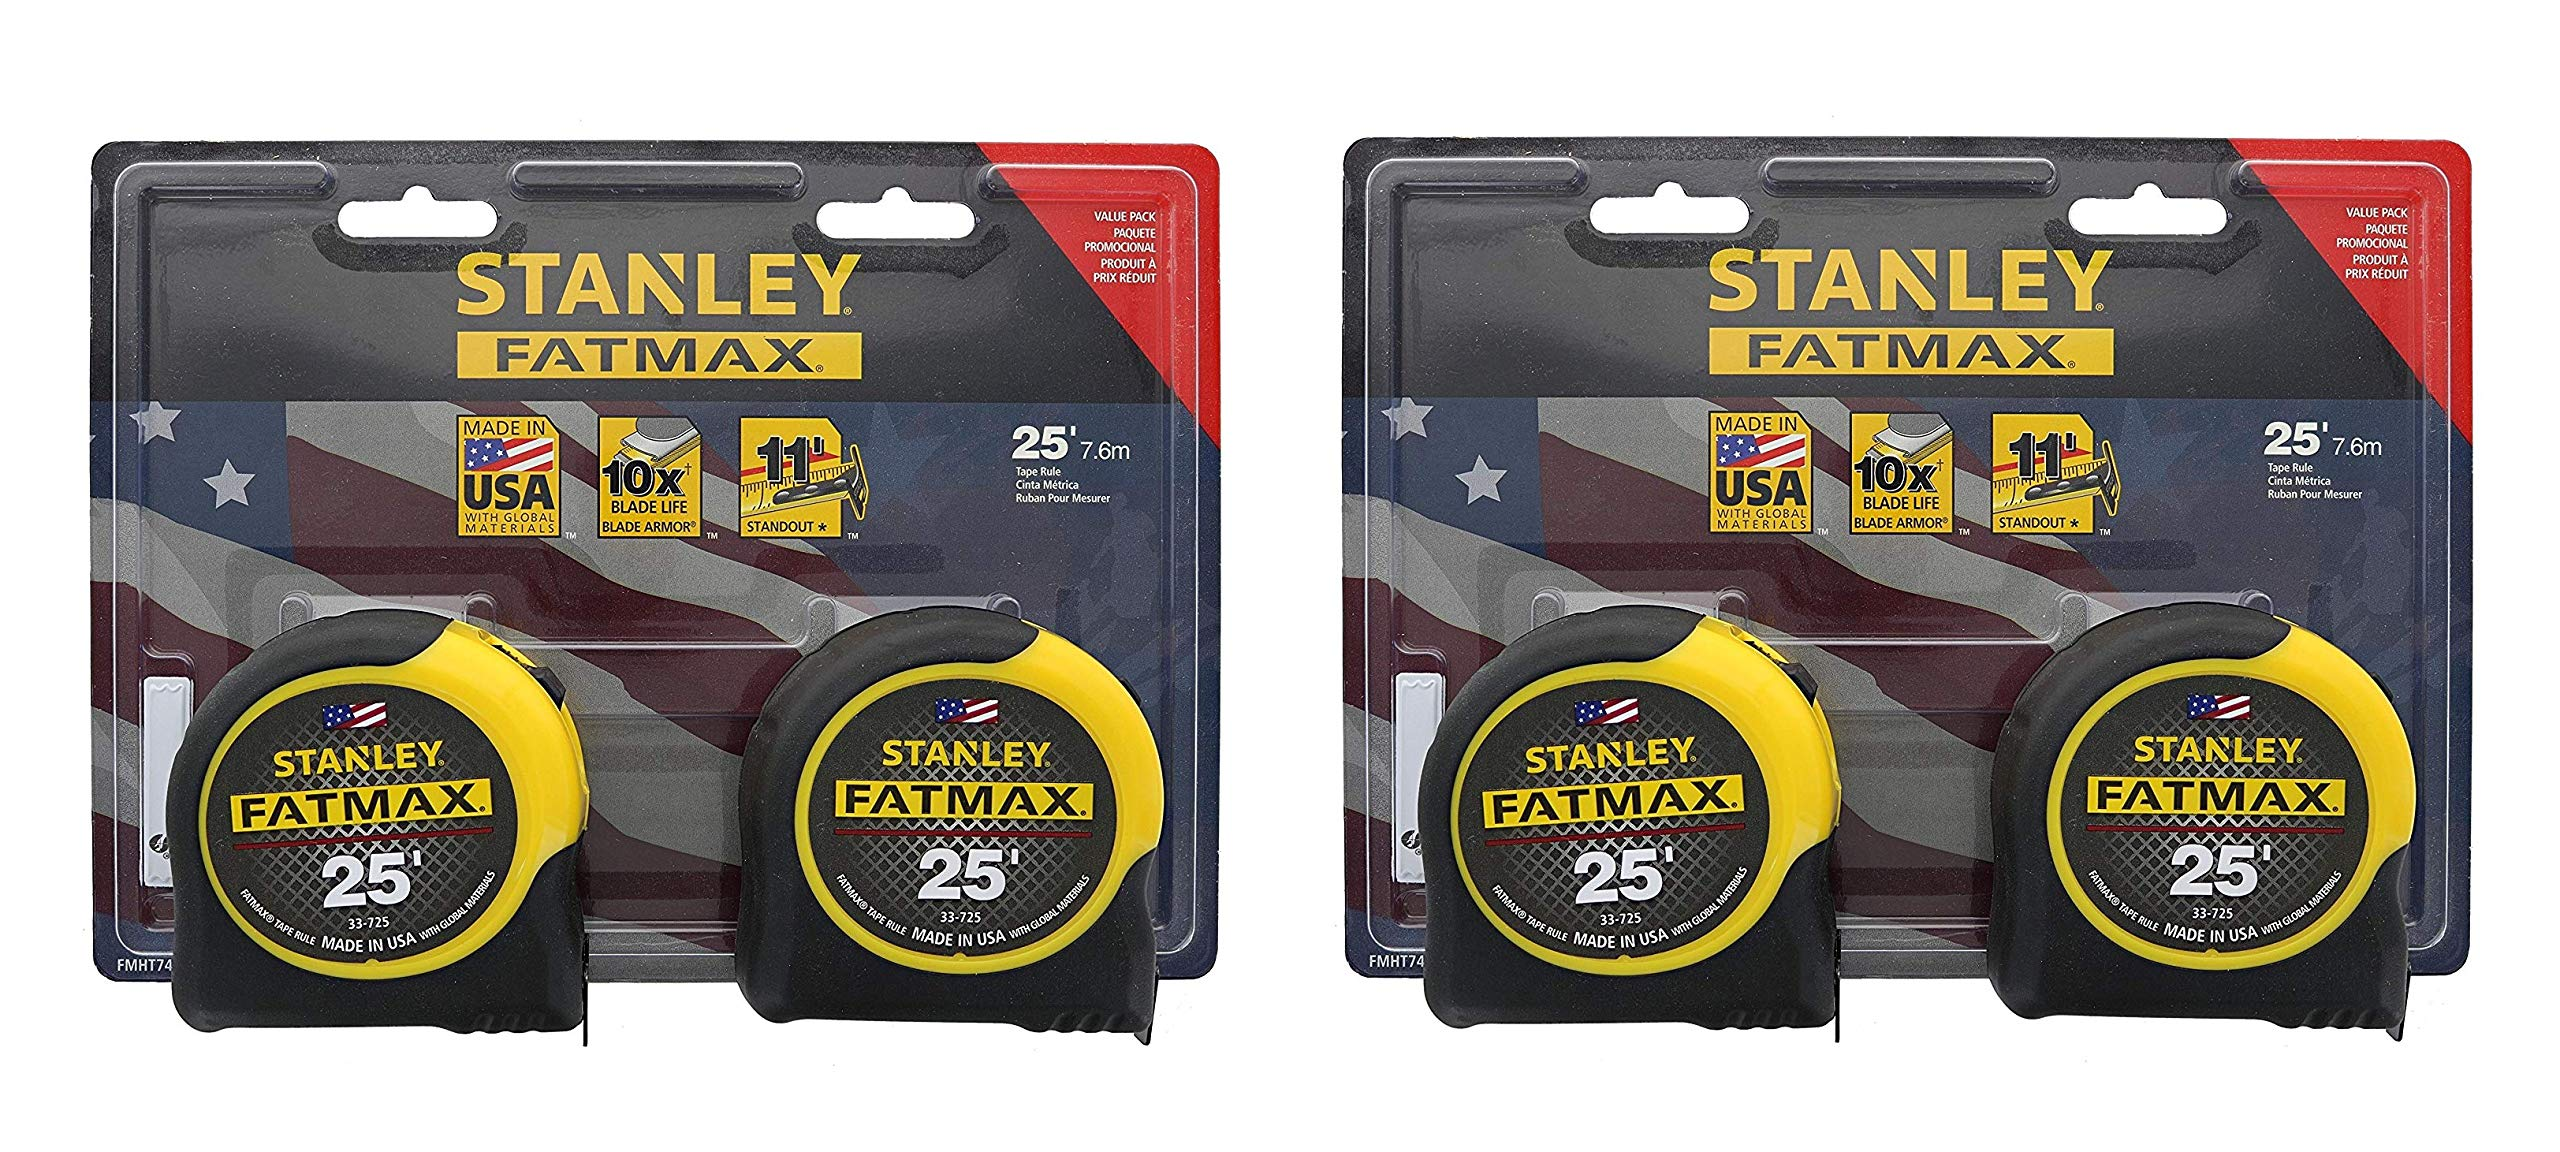 Stanley Consumer Tools FMHT74038 25' Fatmax Tape Measure, 2 Tape Measures per Pack, 4 Tape Measures Total